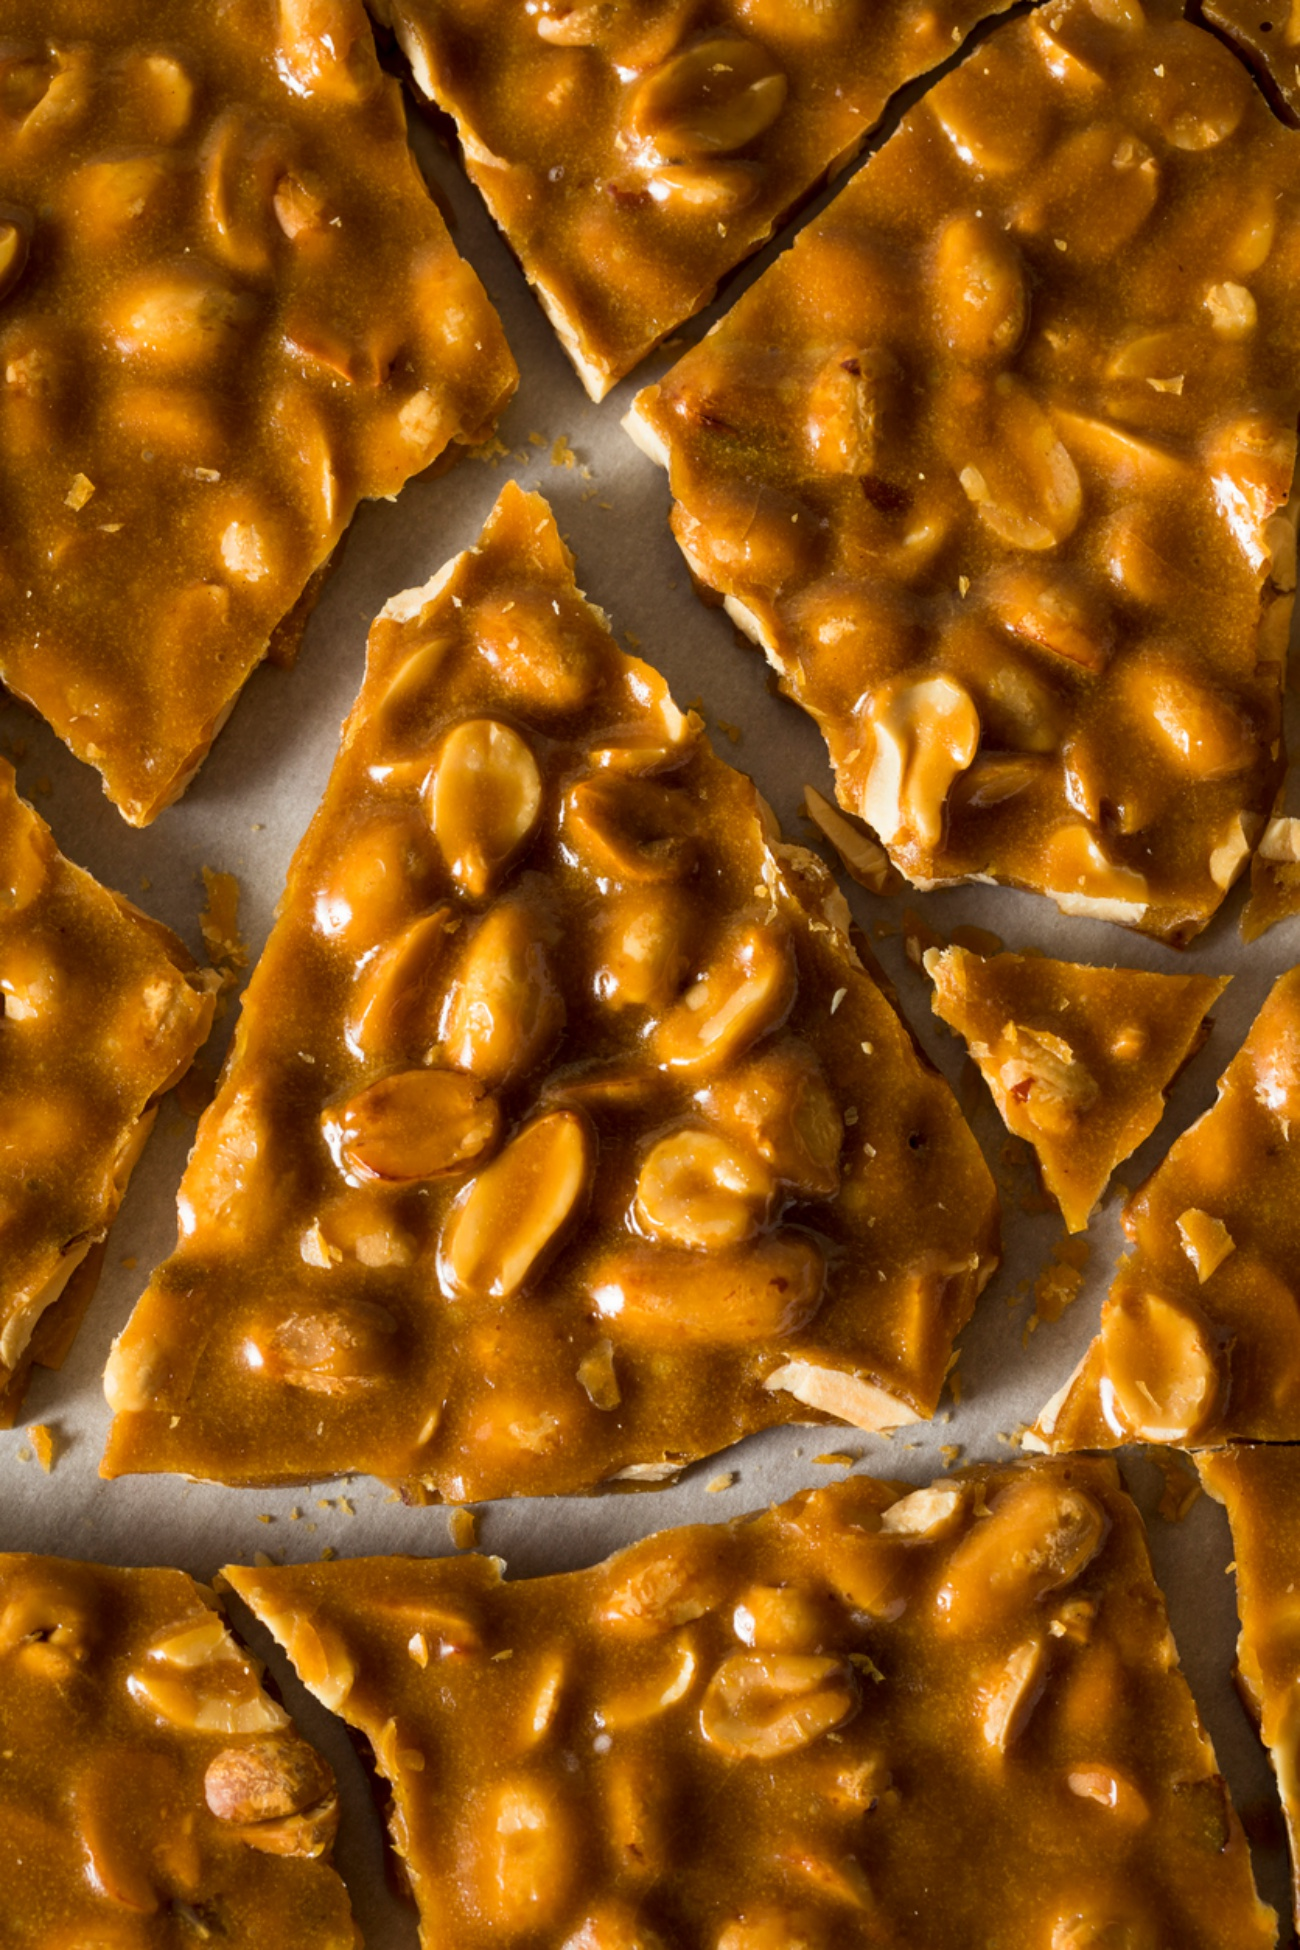 Homemade Holiday Peanut Brittle